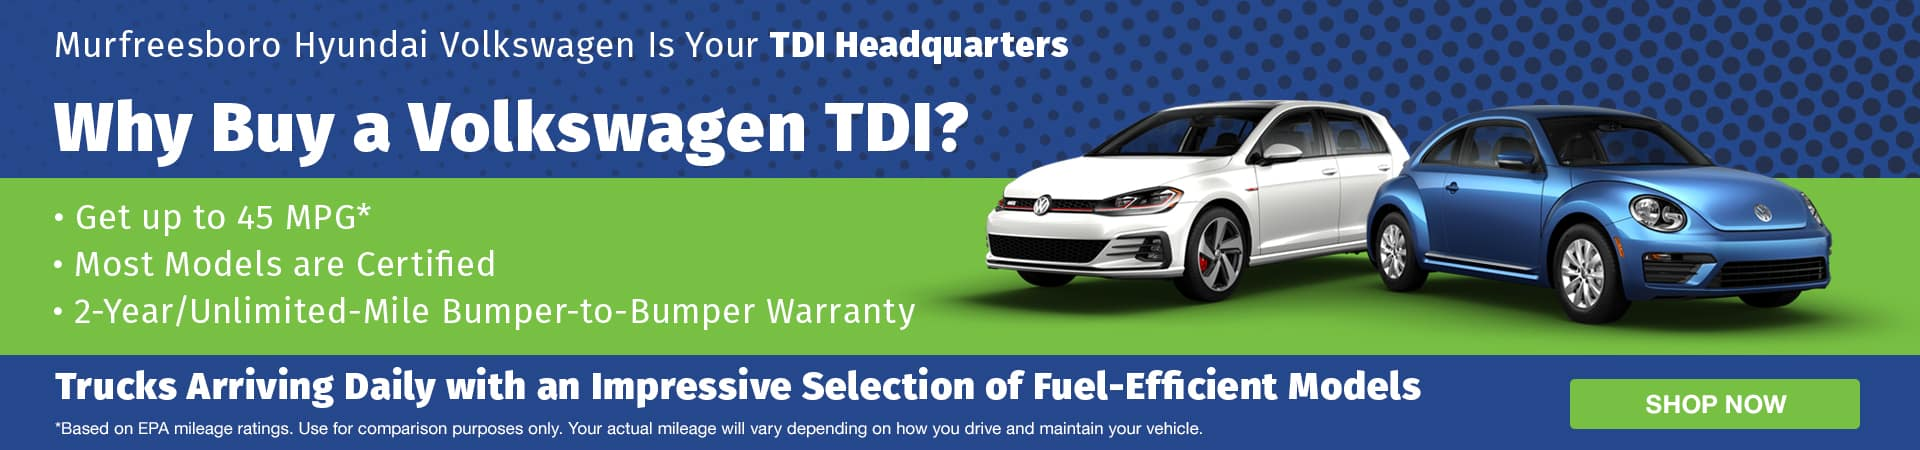 Used Volkswagen TDIs for sale in Murfreesboro TN